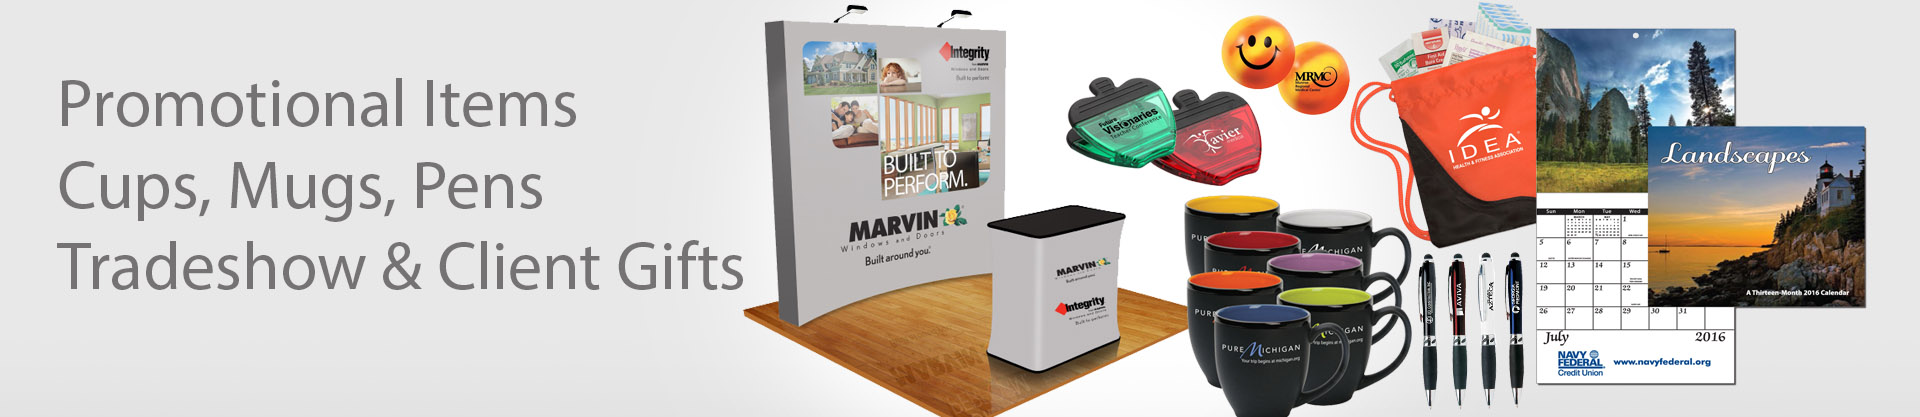 Trade show gift banner images-cups-pens-calendar-backpack